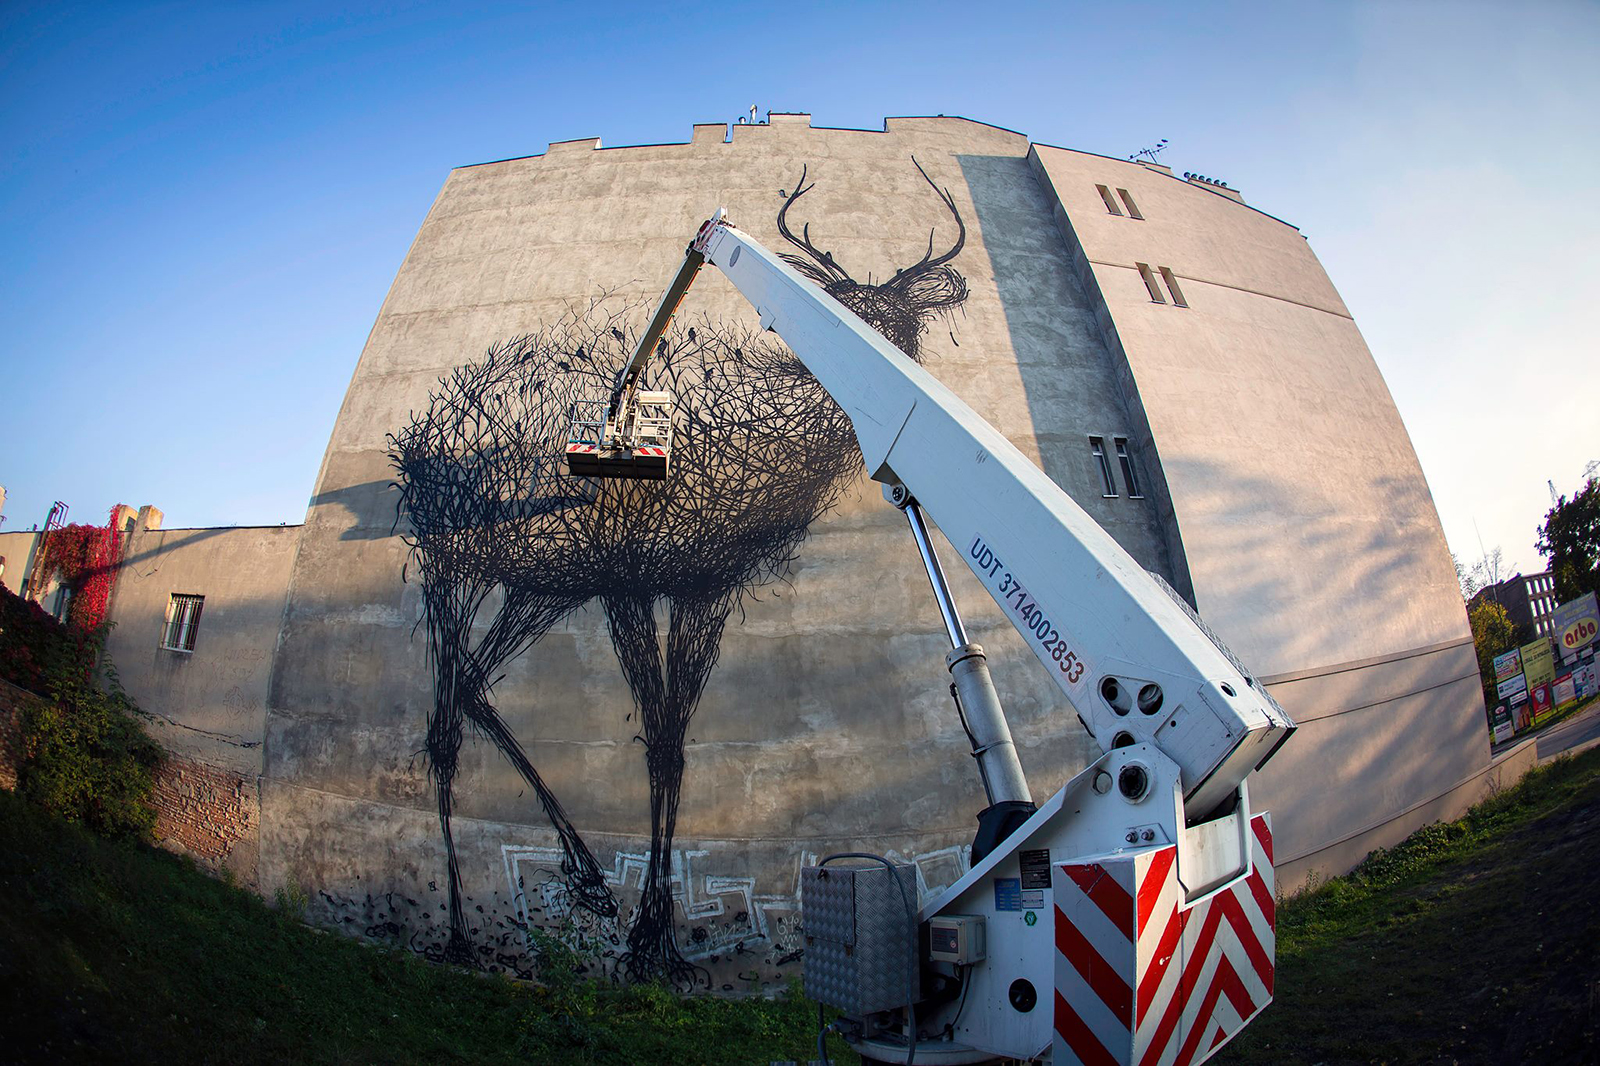 daleast-new-mural-for-galeria-urban-forms-10